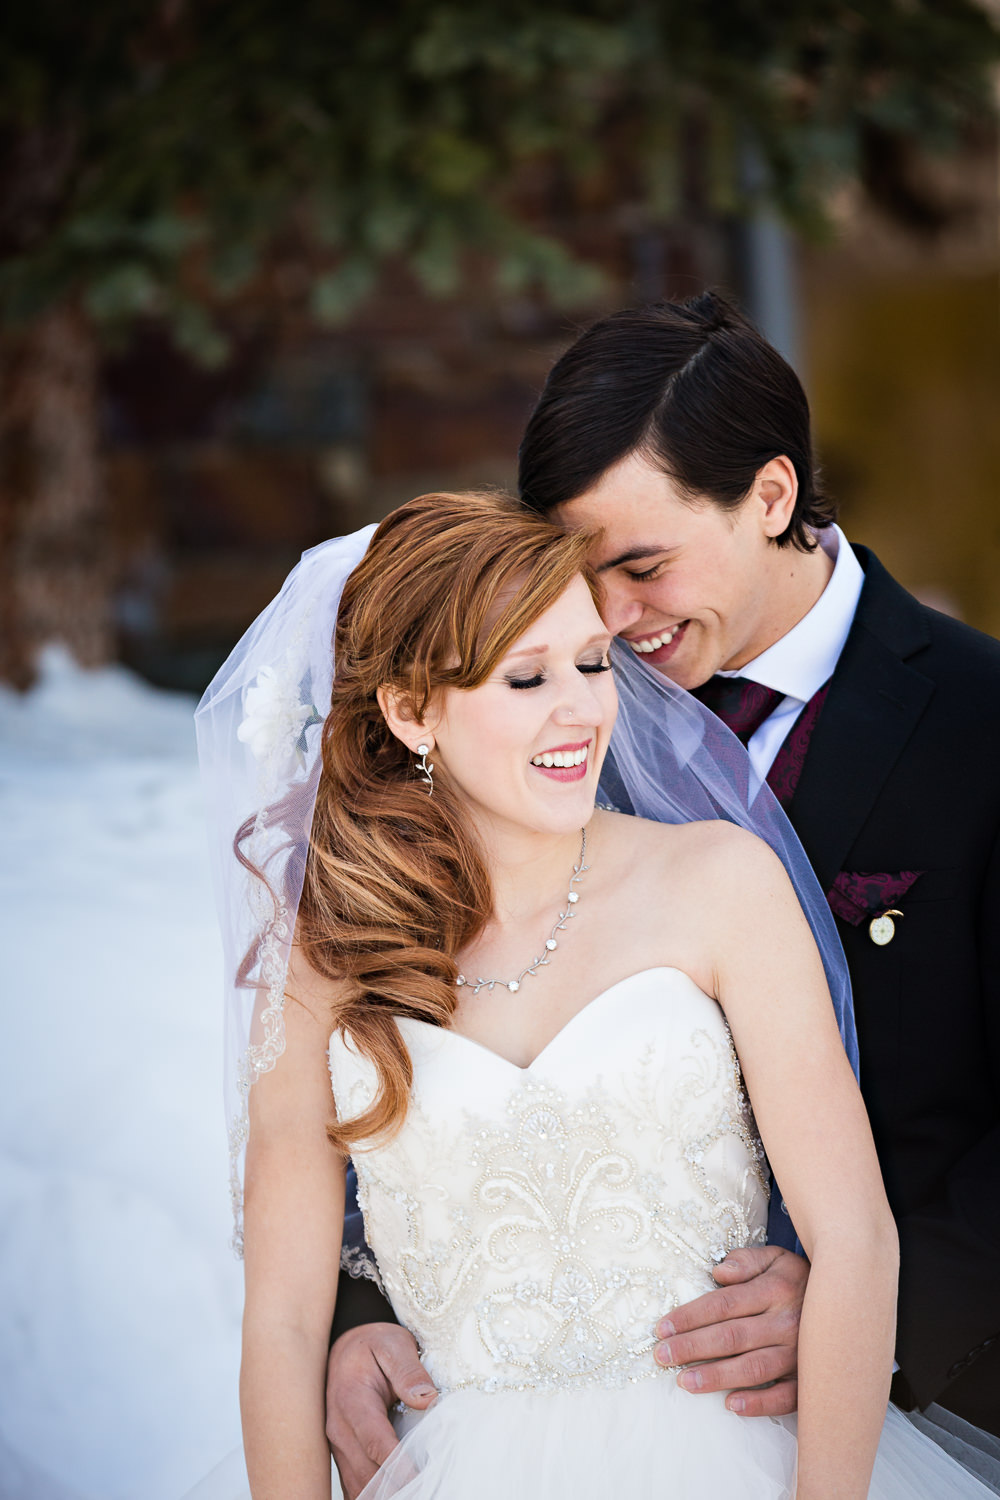 big-sky-montana-winter-wedding-breanna-first-look-groom-leans-against-bride.jpg